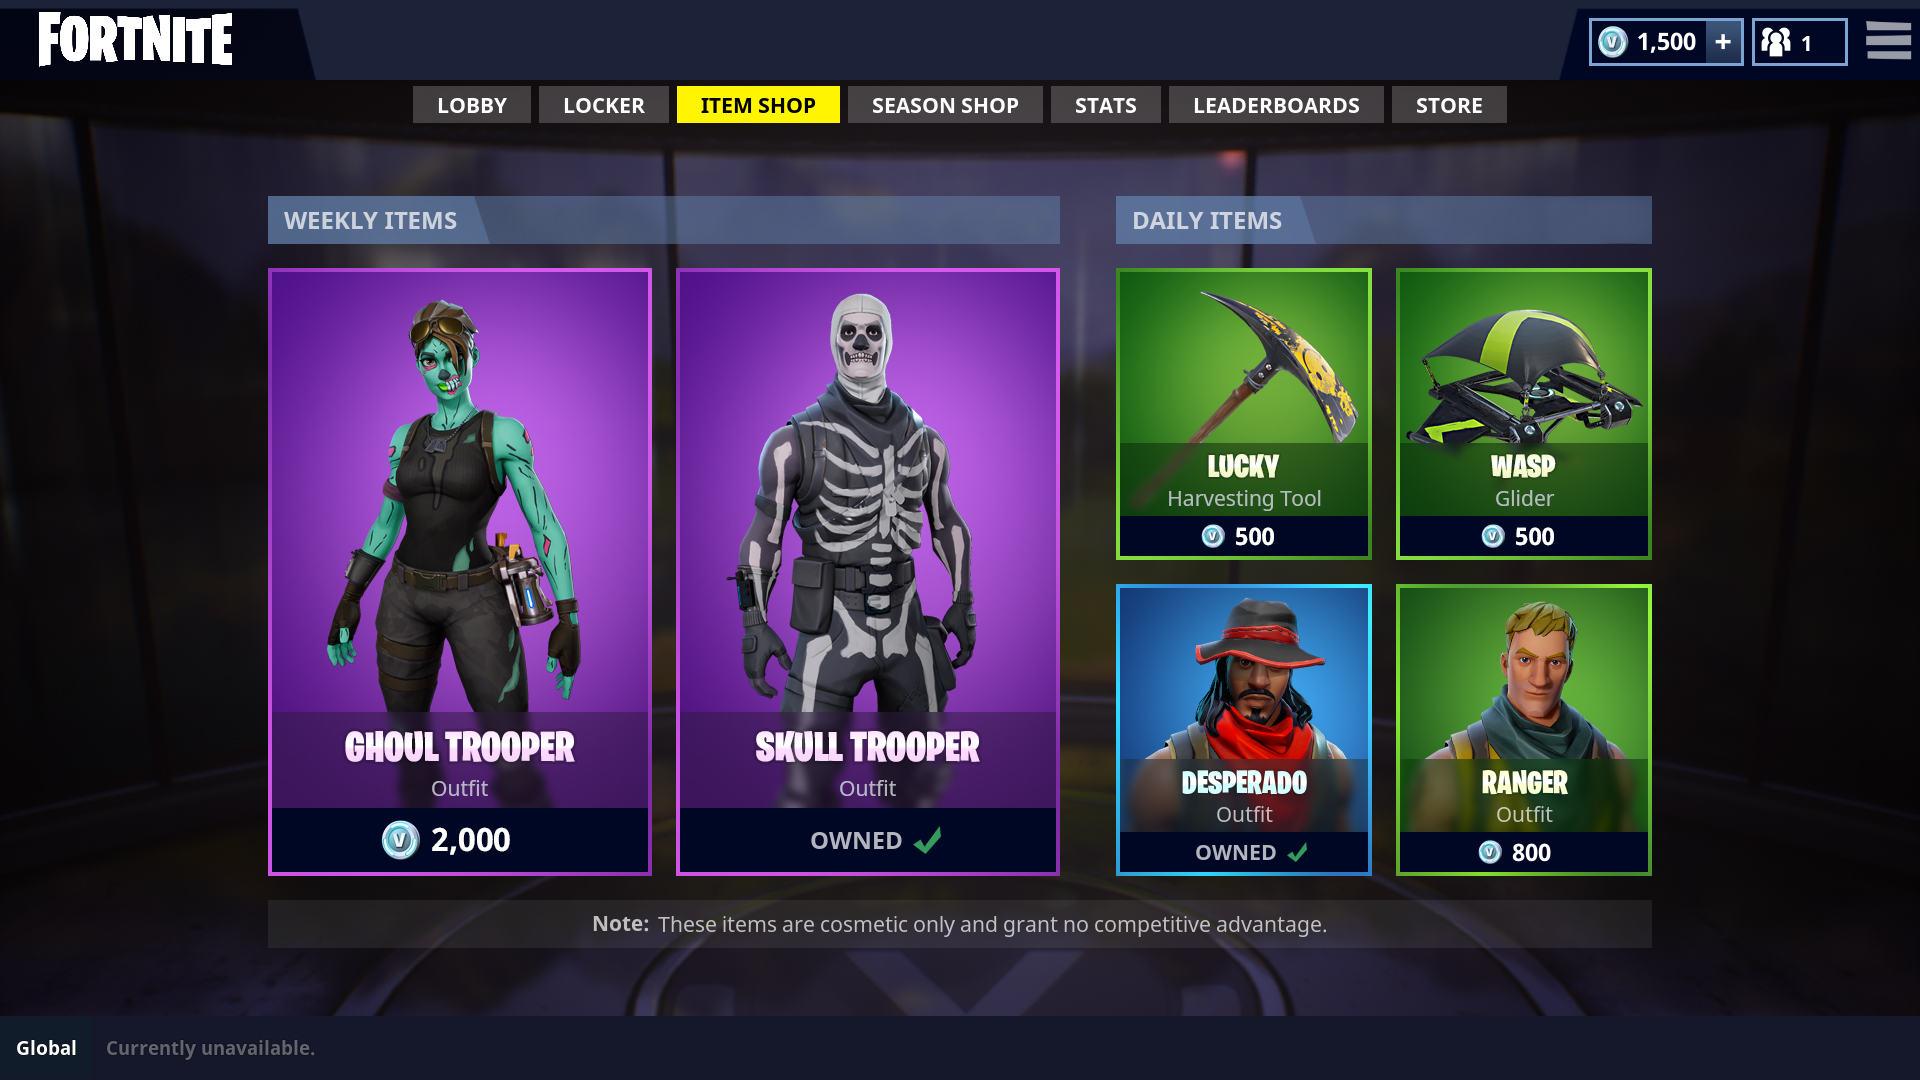 Fortnite%2Fblog%2Ffortnitemares-update-1-8-patch-notes%2FStoreSales-1920x1080-50e5b6f0d6d7bb2418fcb6516bb3dc0ff226b8c5